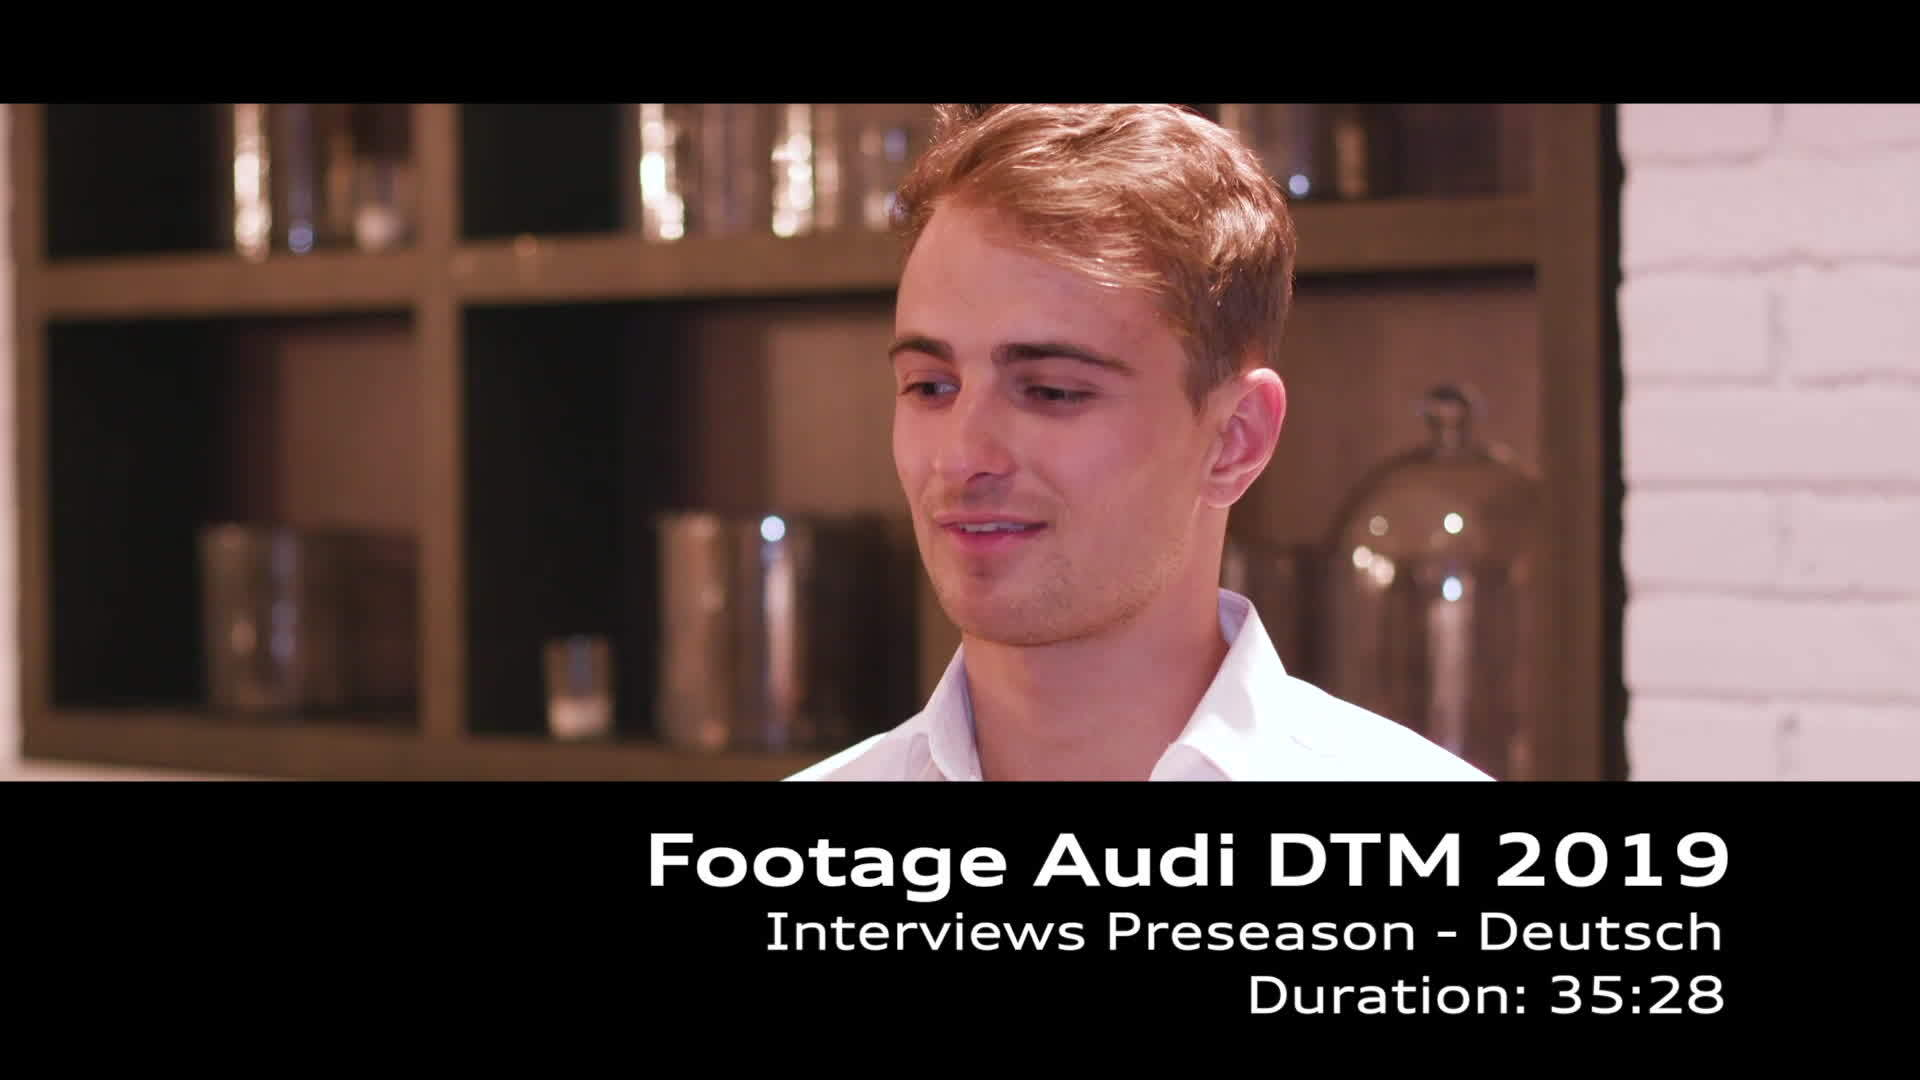 Footage Audi DTM 2019 Interviews